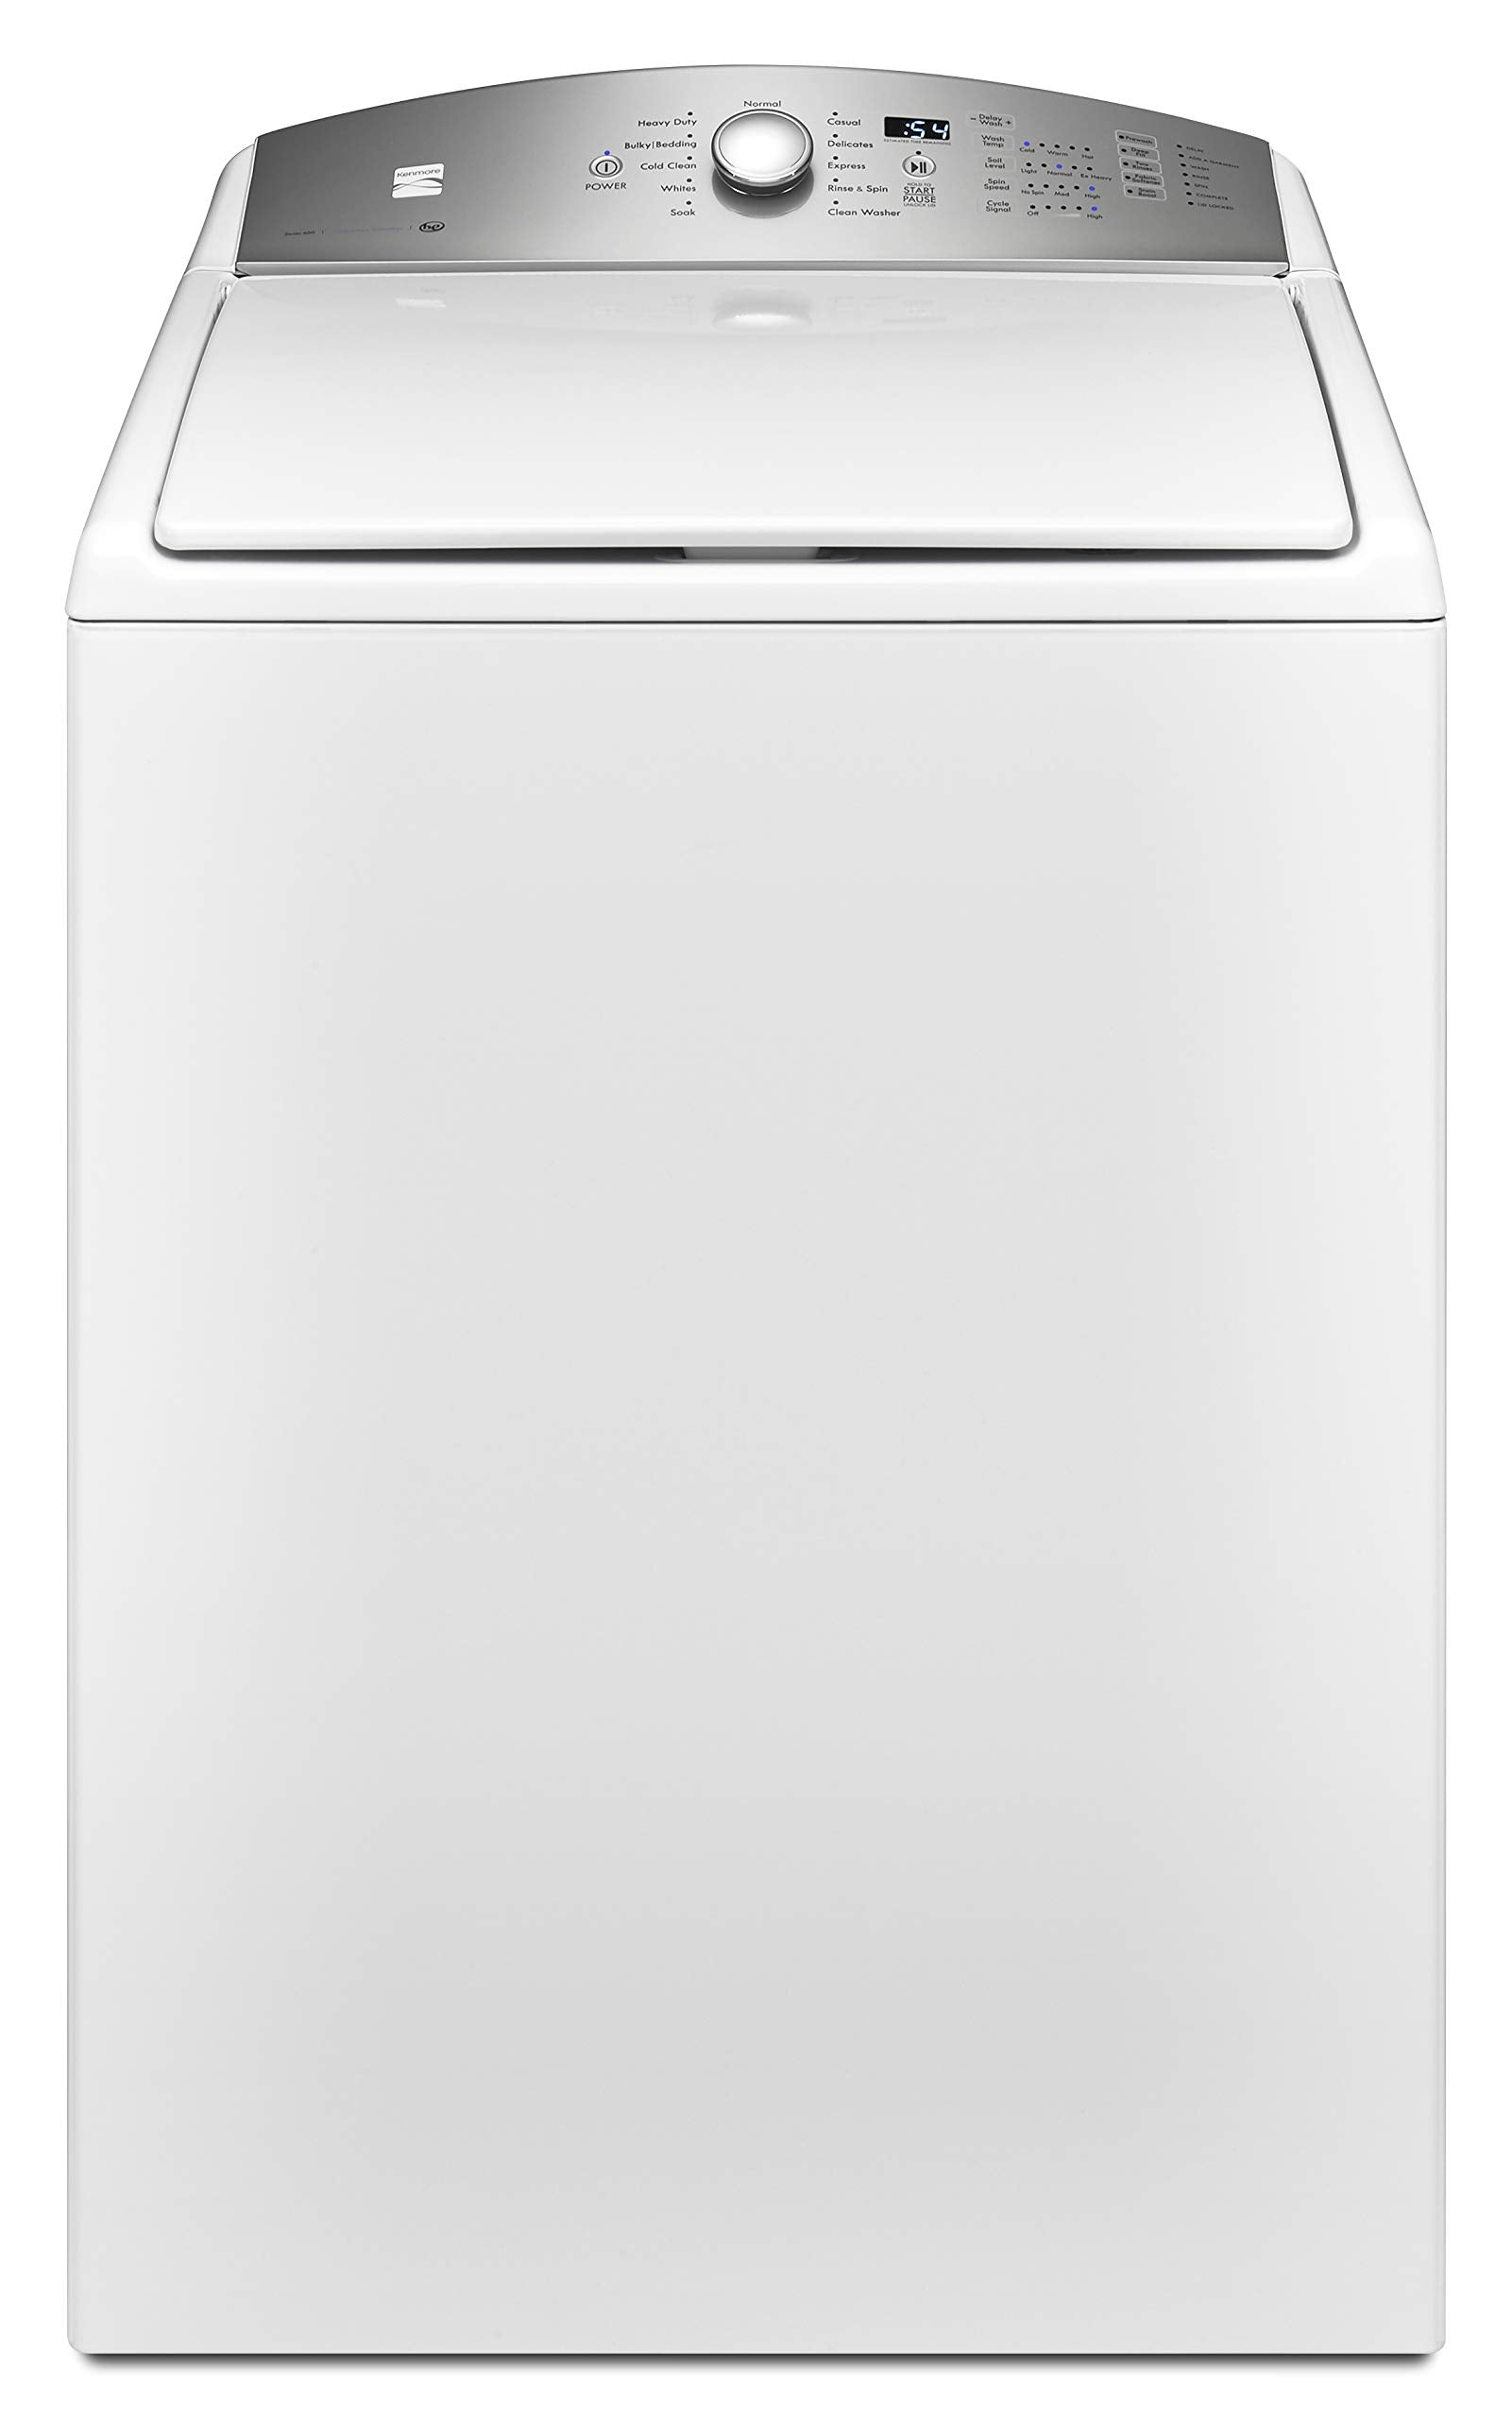 Kenmore 2626132  4.8 cu.ft. Top Load Washer with Triple Action Impeller in White, includes delivery and hookup